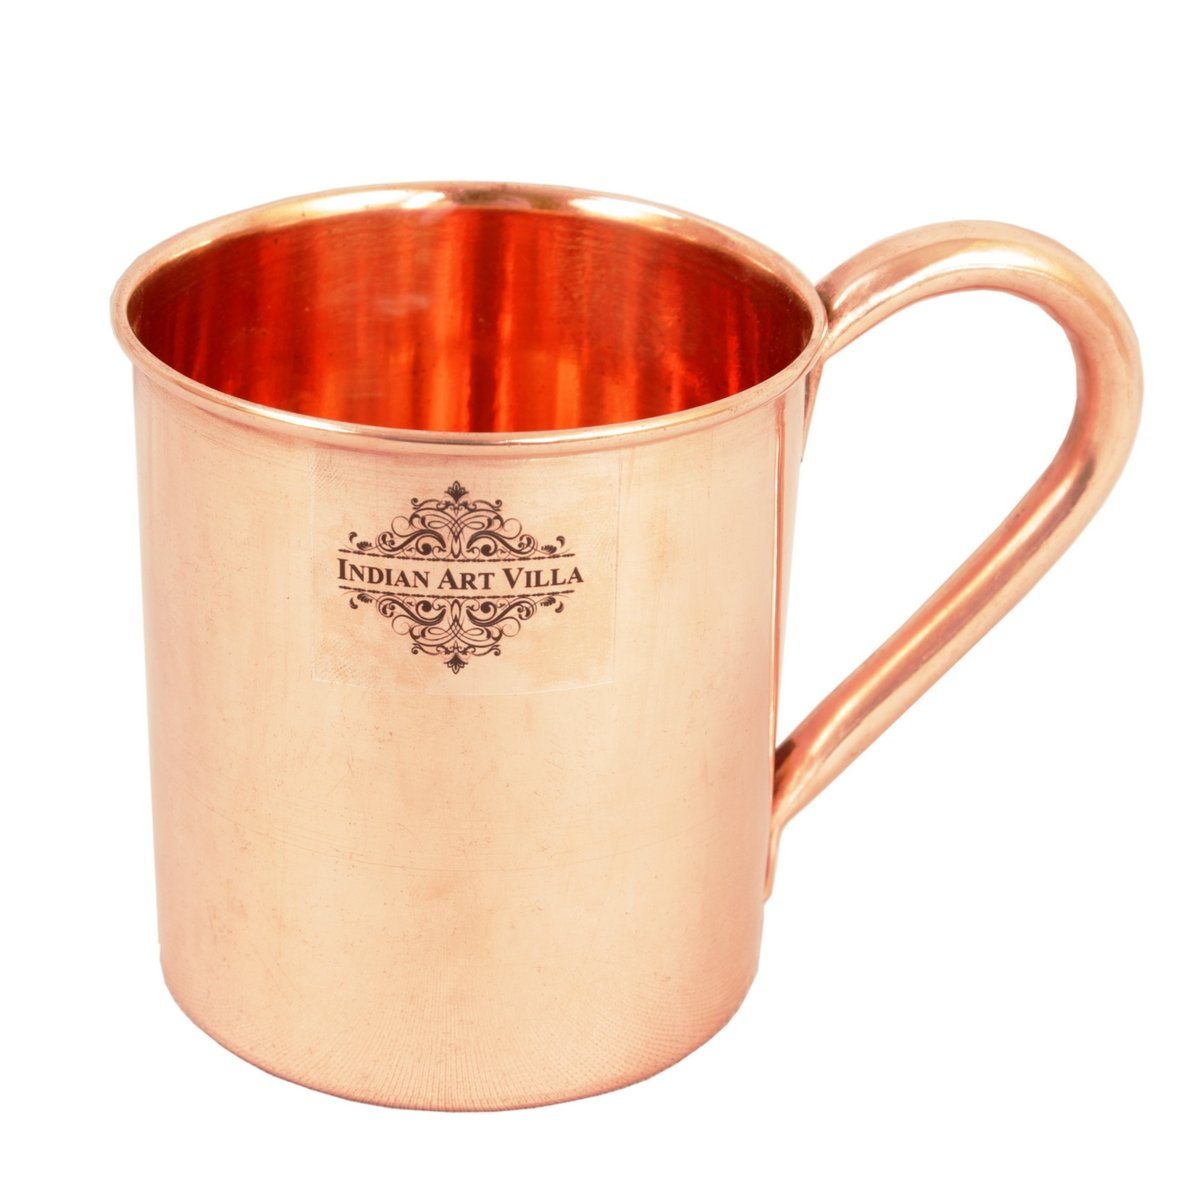 IndianArtVilla Pure Copper Moscow Mule Beer Mug Cup | 14 Oz Simply Classy | For Party, Home, Bar and Restaurant